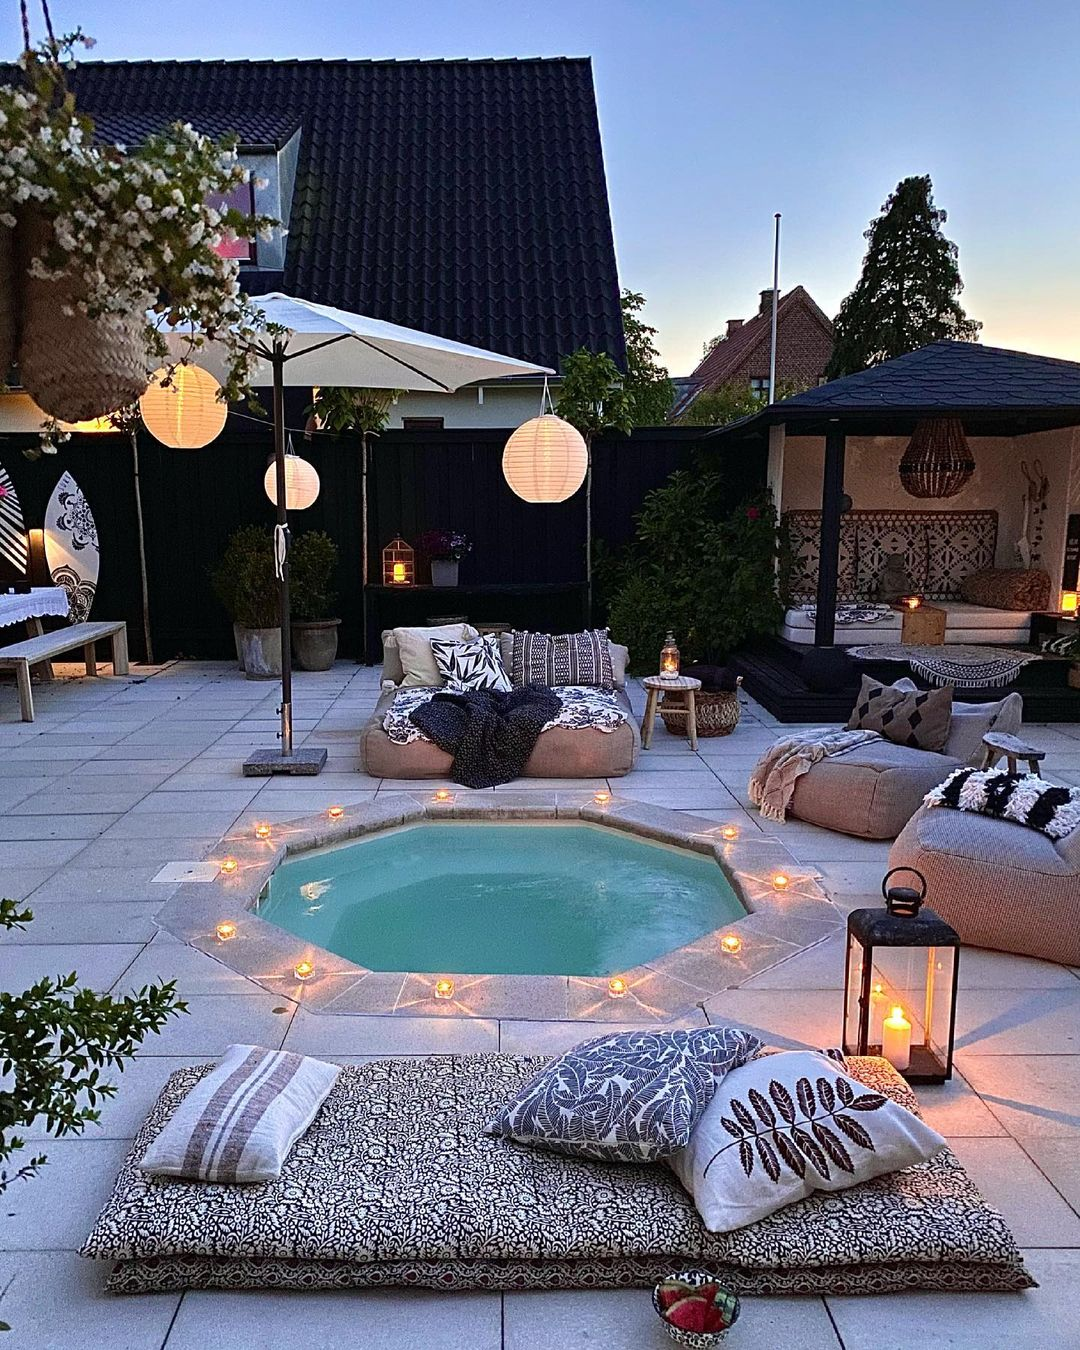 summer backyard set up with pool and pillows